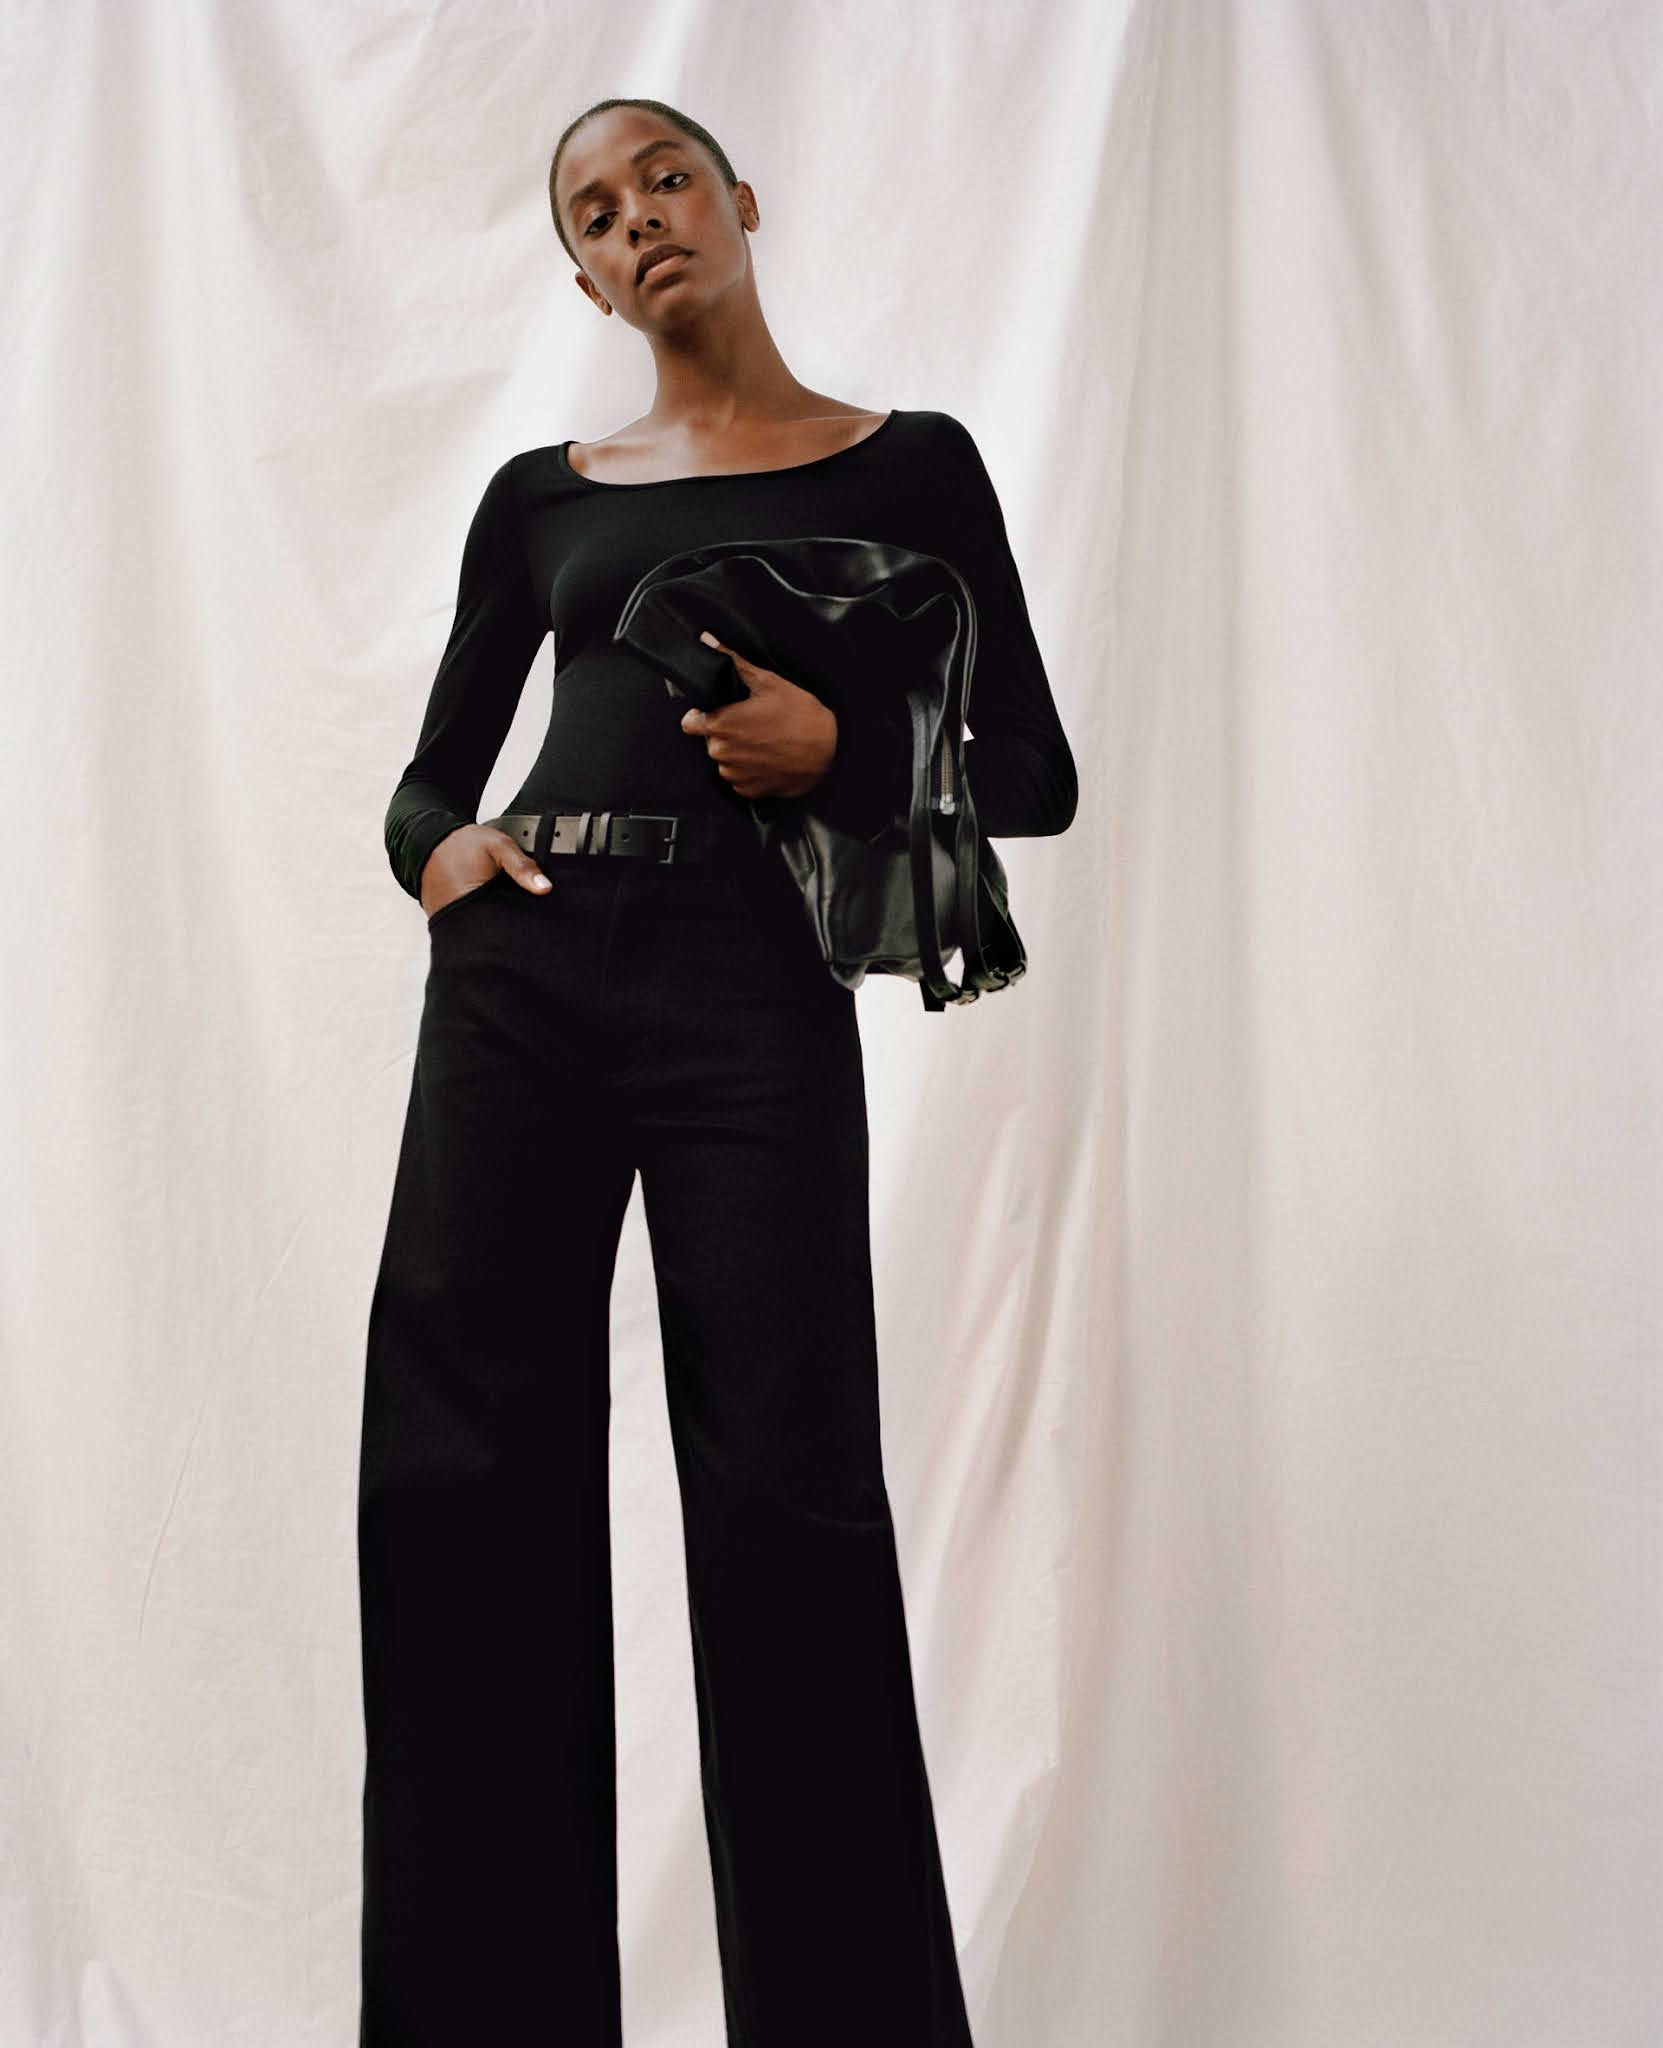 5 Minimalist Fall Outfit Ideas — Capsule Wardrobe with black boatneck top and wide-leg jeans